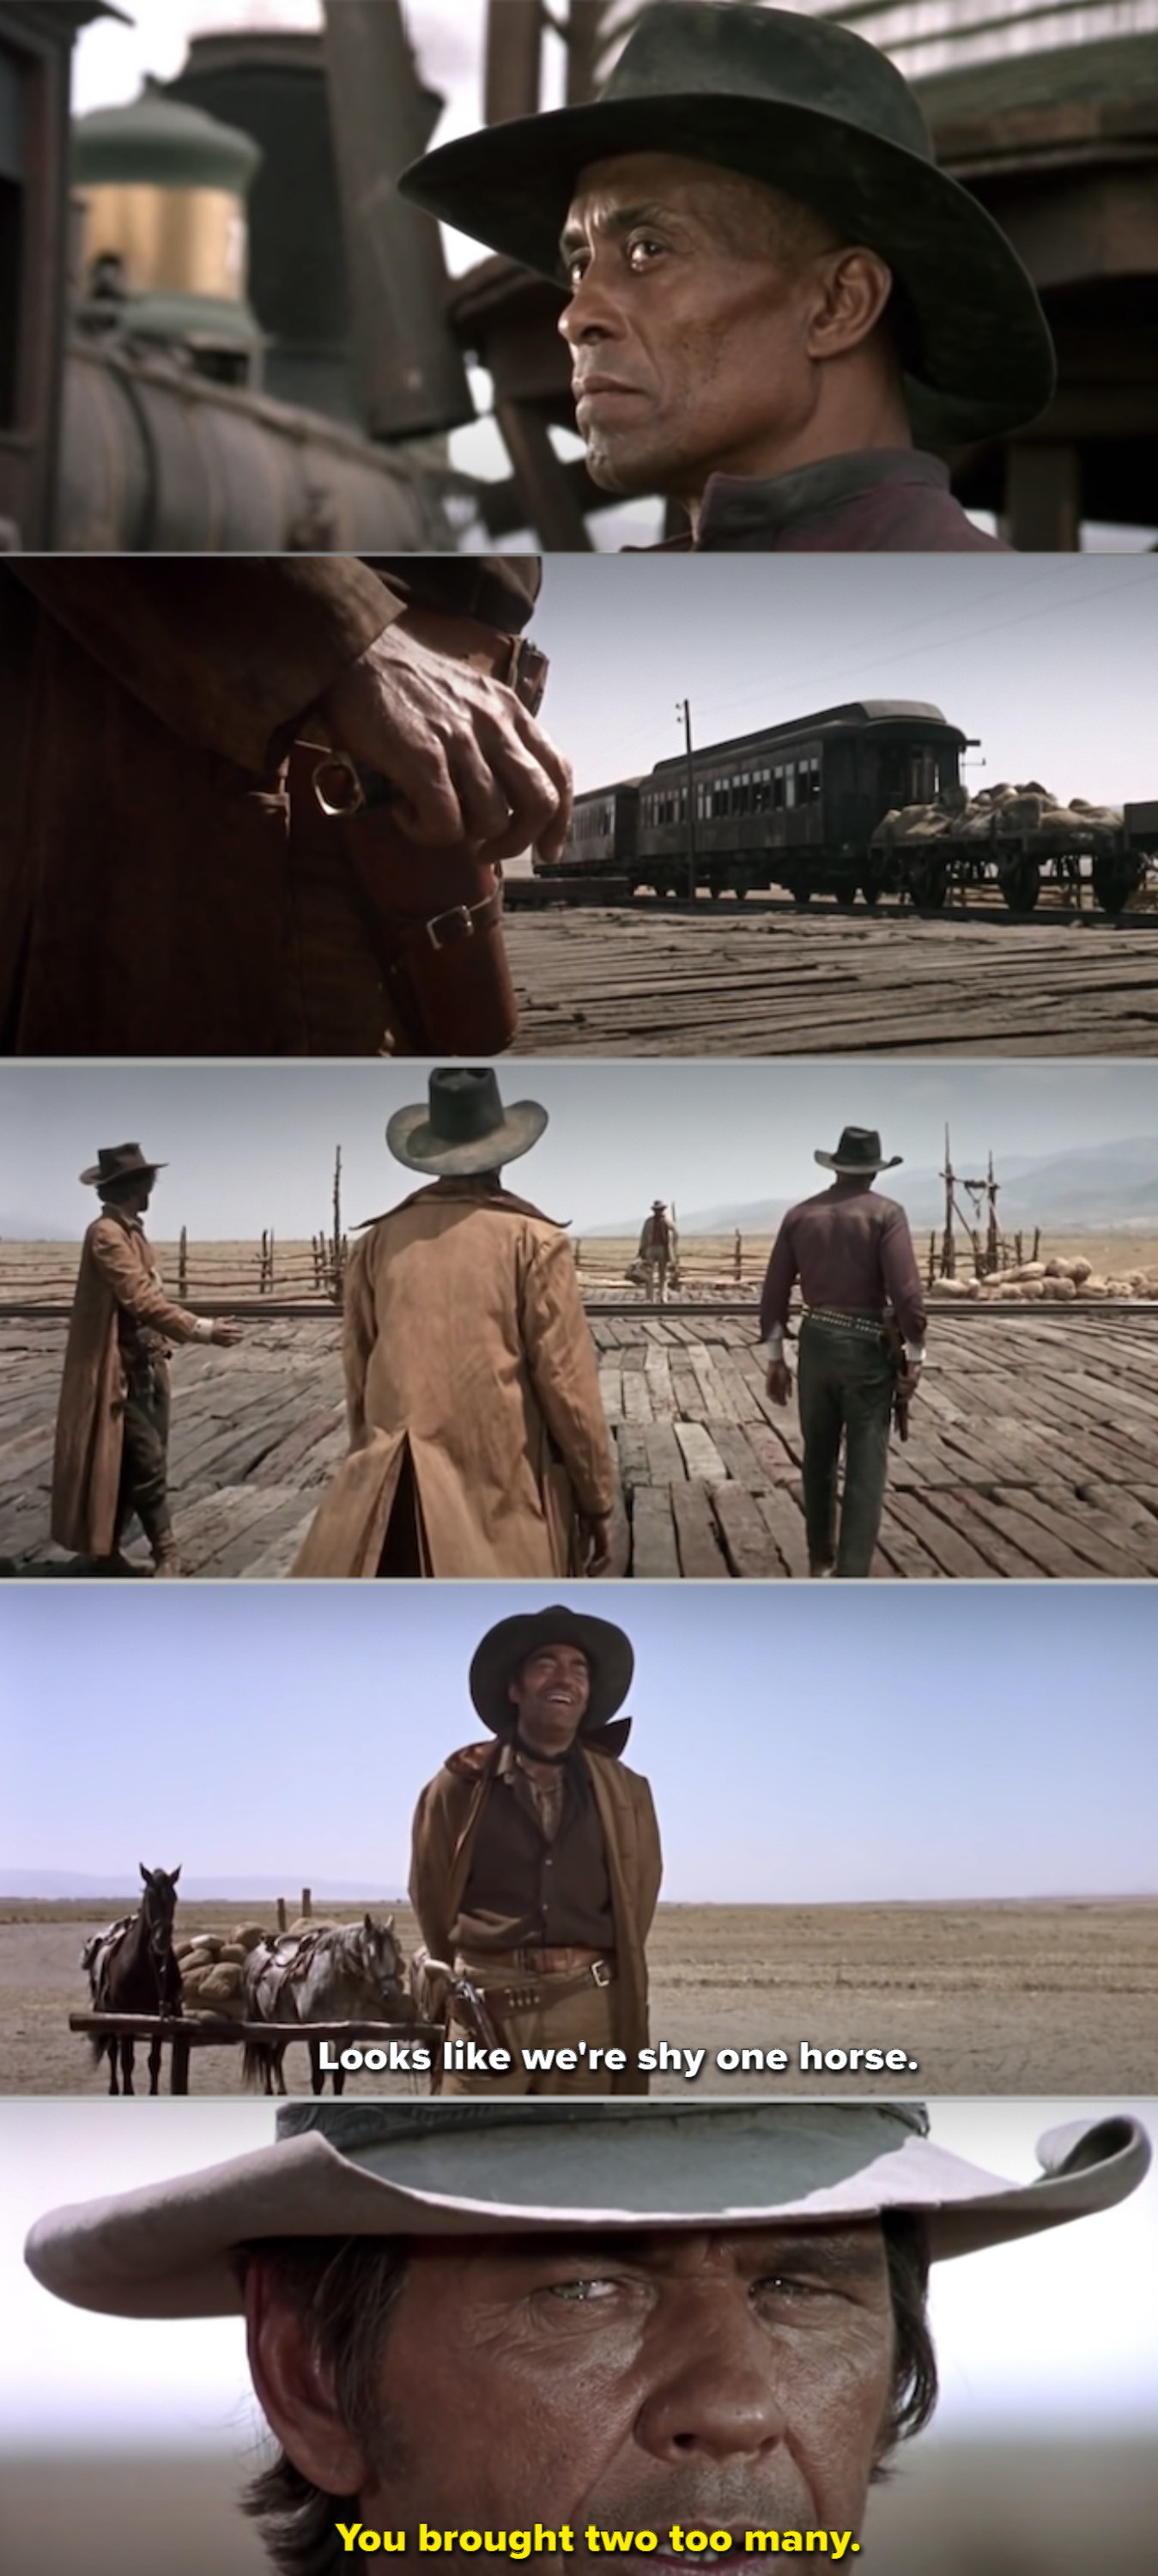 The gang preparing for a duel at the train station in the opening shot